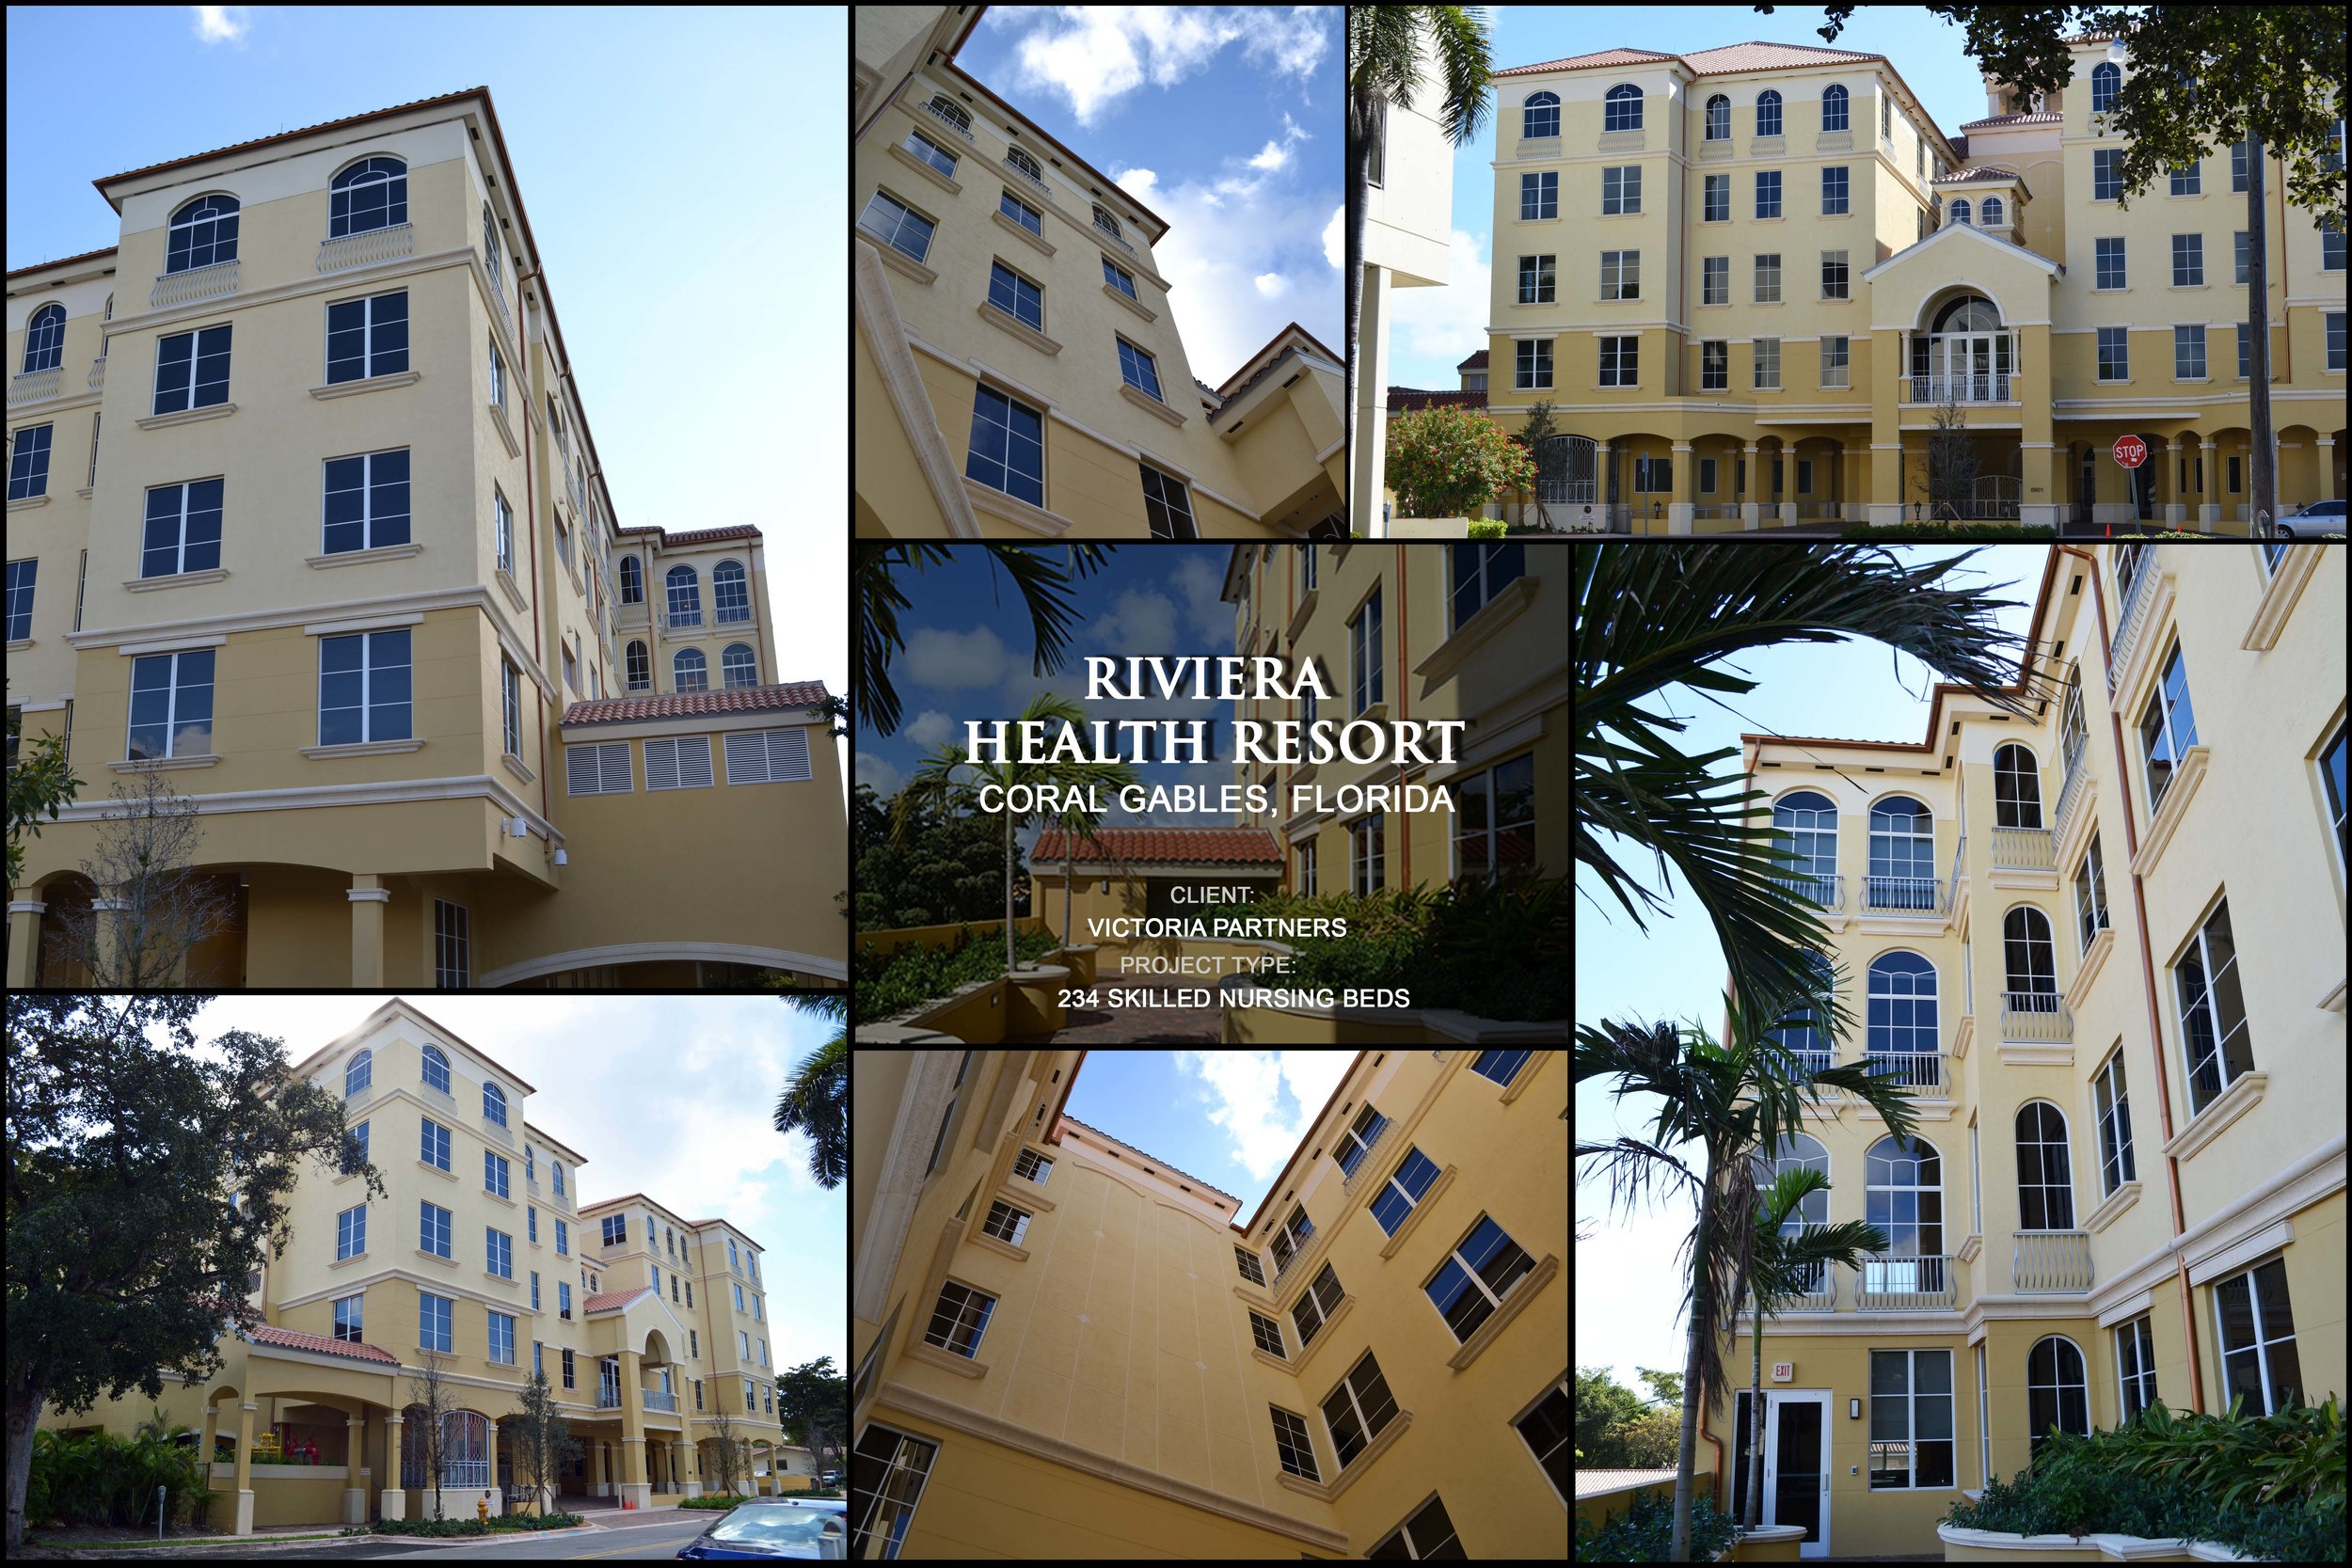 Riviera Health Resort